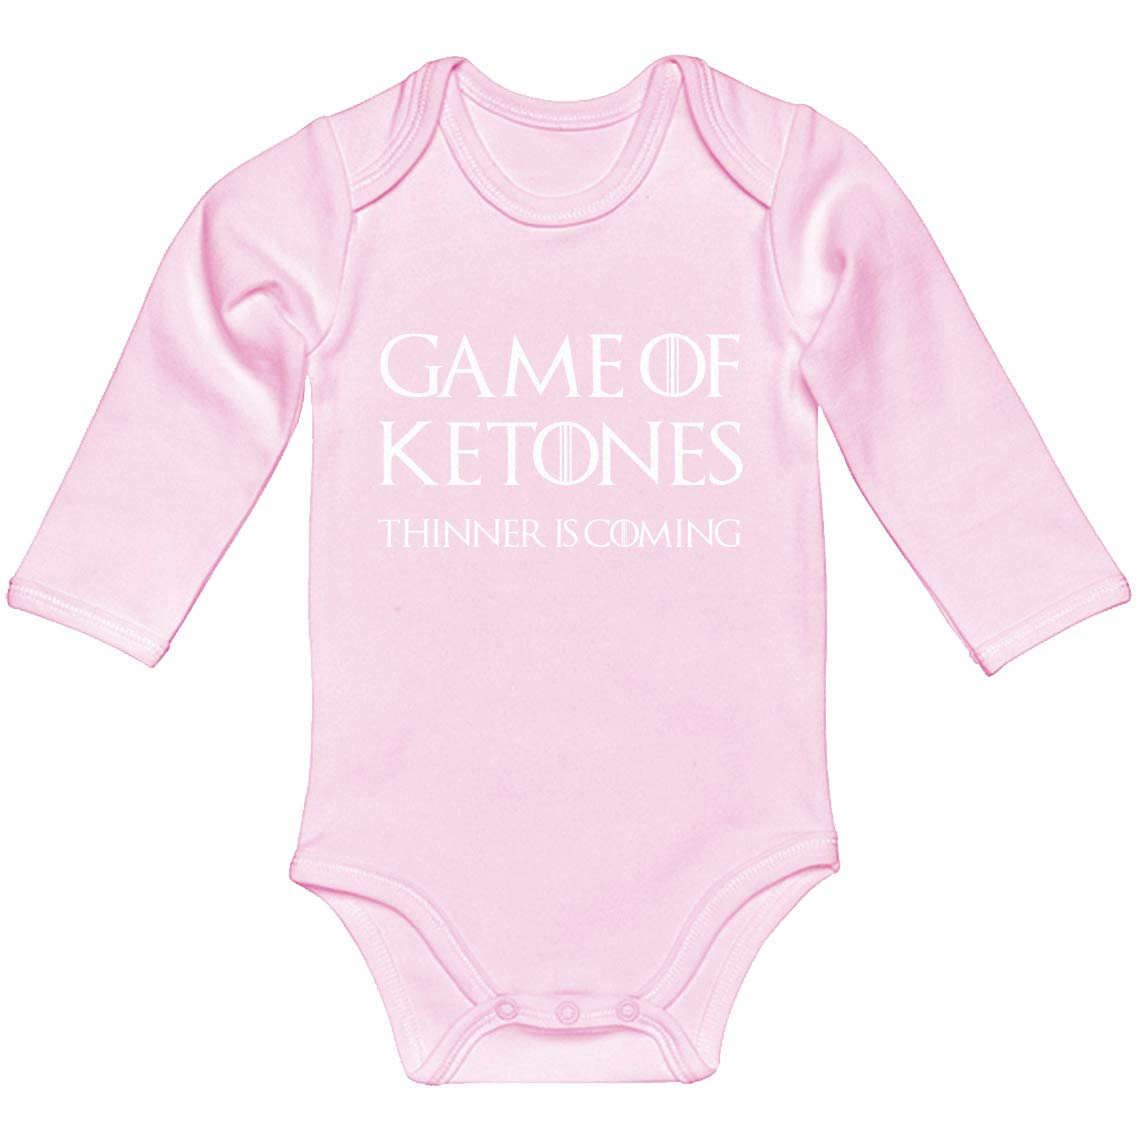 Baby Romper The Snuggle is Real 100/% Cotton Long Sleeve Infant Bodysuit